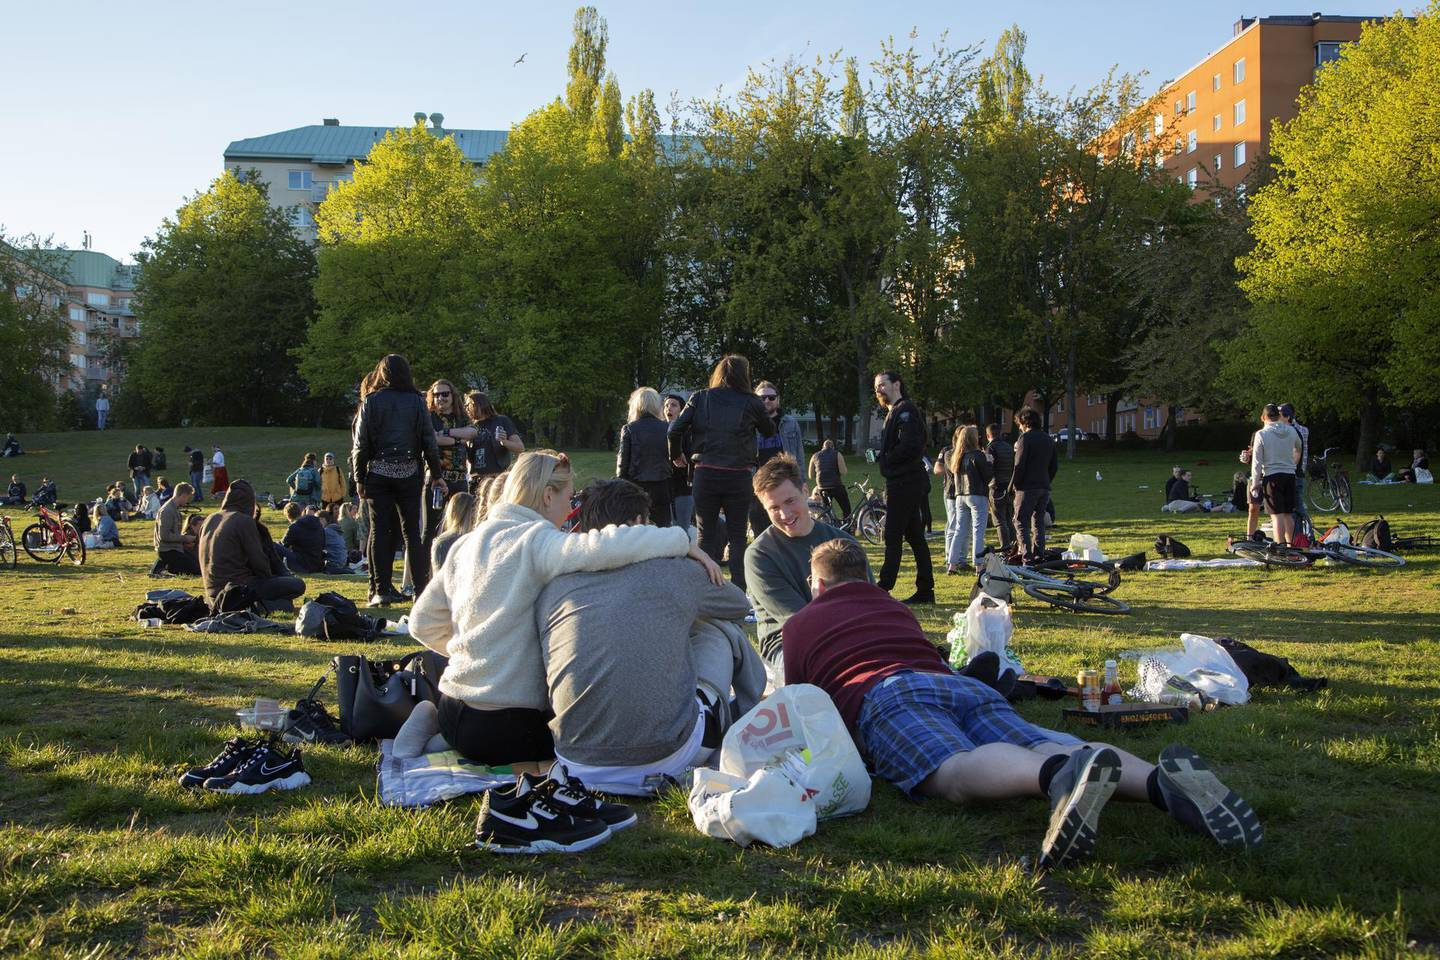 Groups of people sit in a park at Tantolunden in Stockholm, Sweden, on Friday, May 22, 2020. Sweden, which has refused to close down schools and restaurants to contain the new coronavirus, is being closely watched as many other countries are gradually opening up their economies from stricter lockdowns. Photographer: Loulou D'Aki/Bloomberg